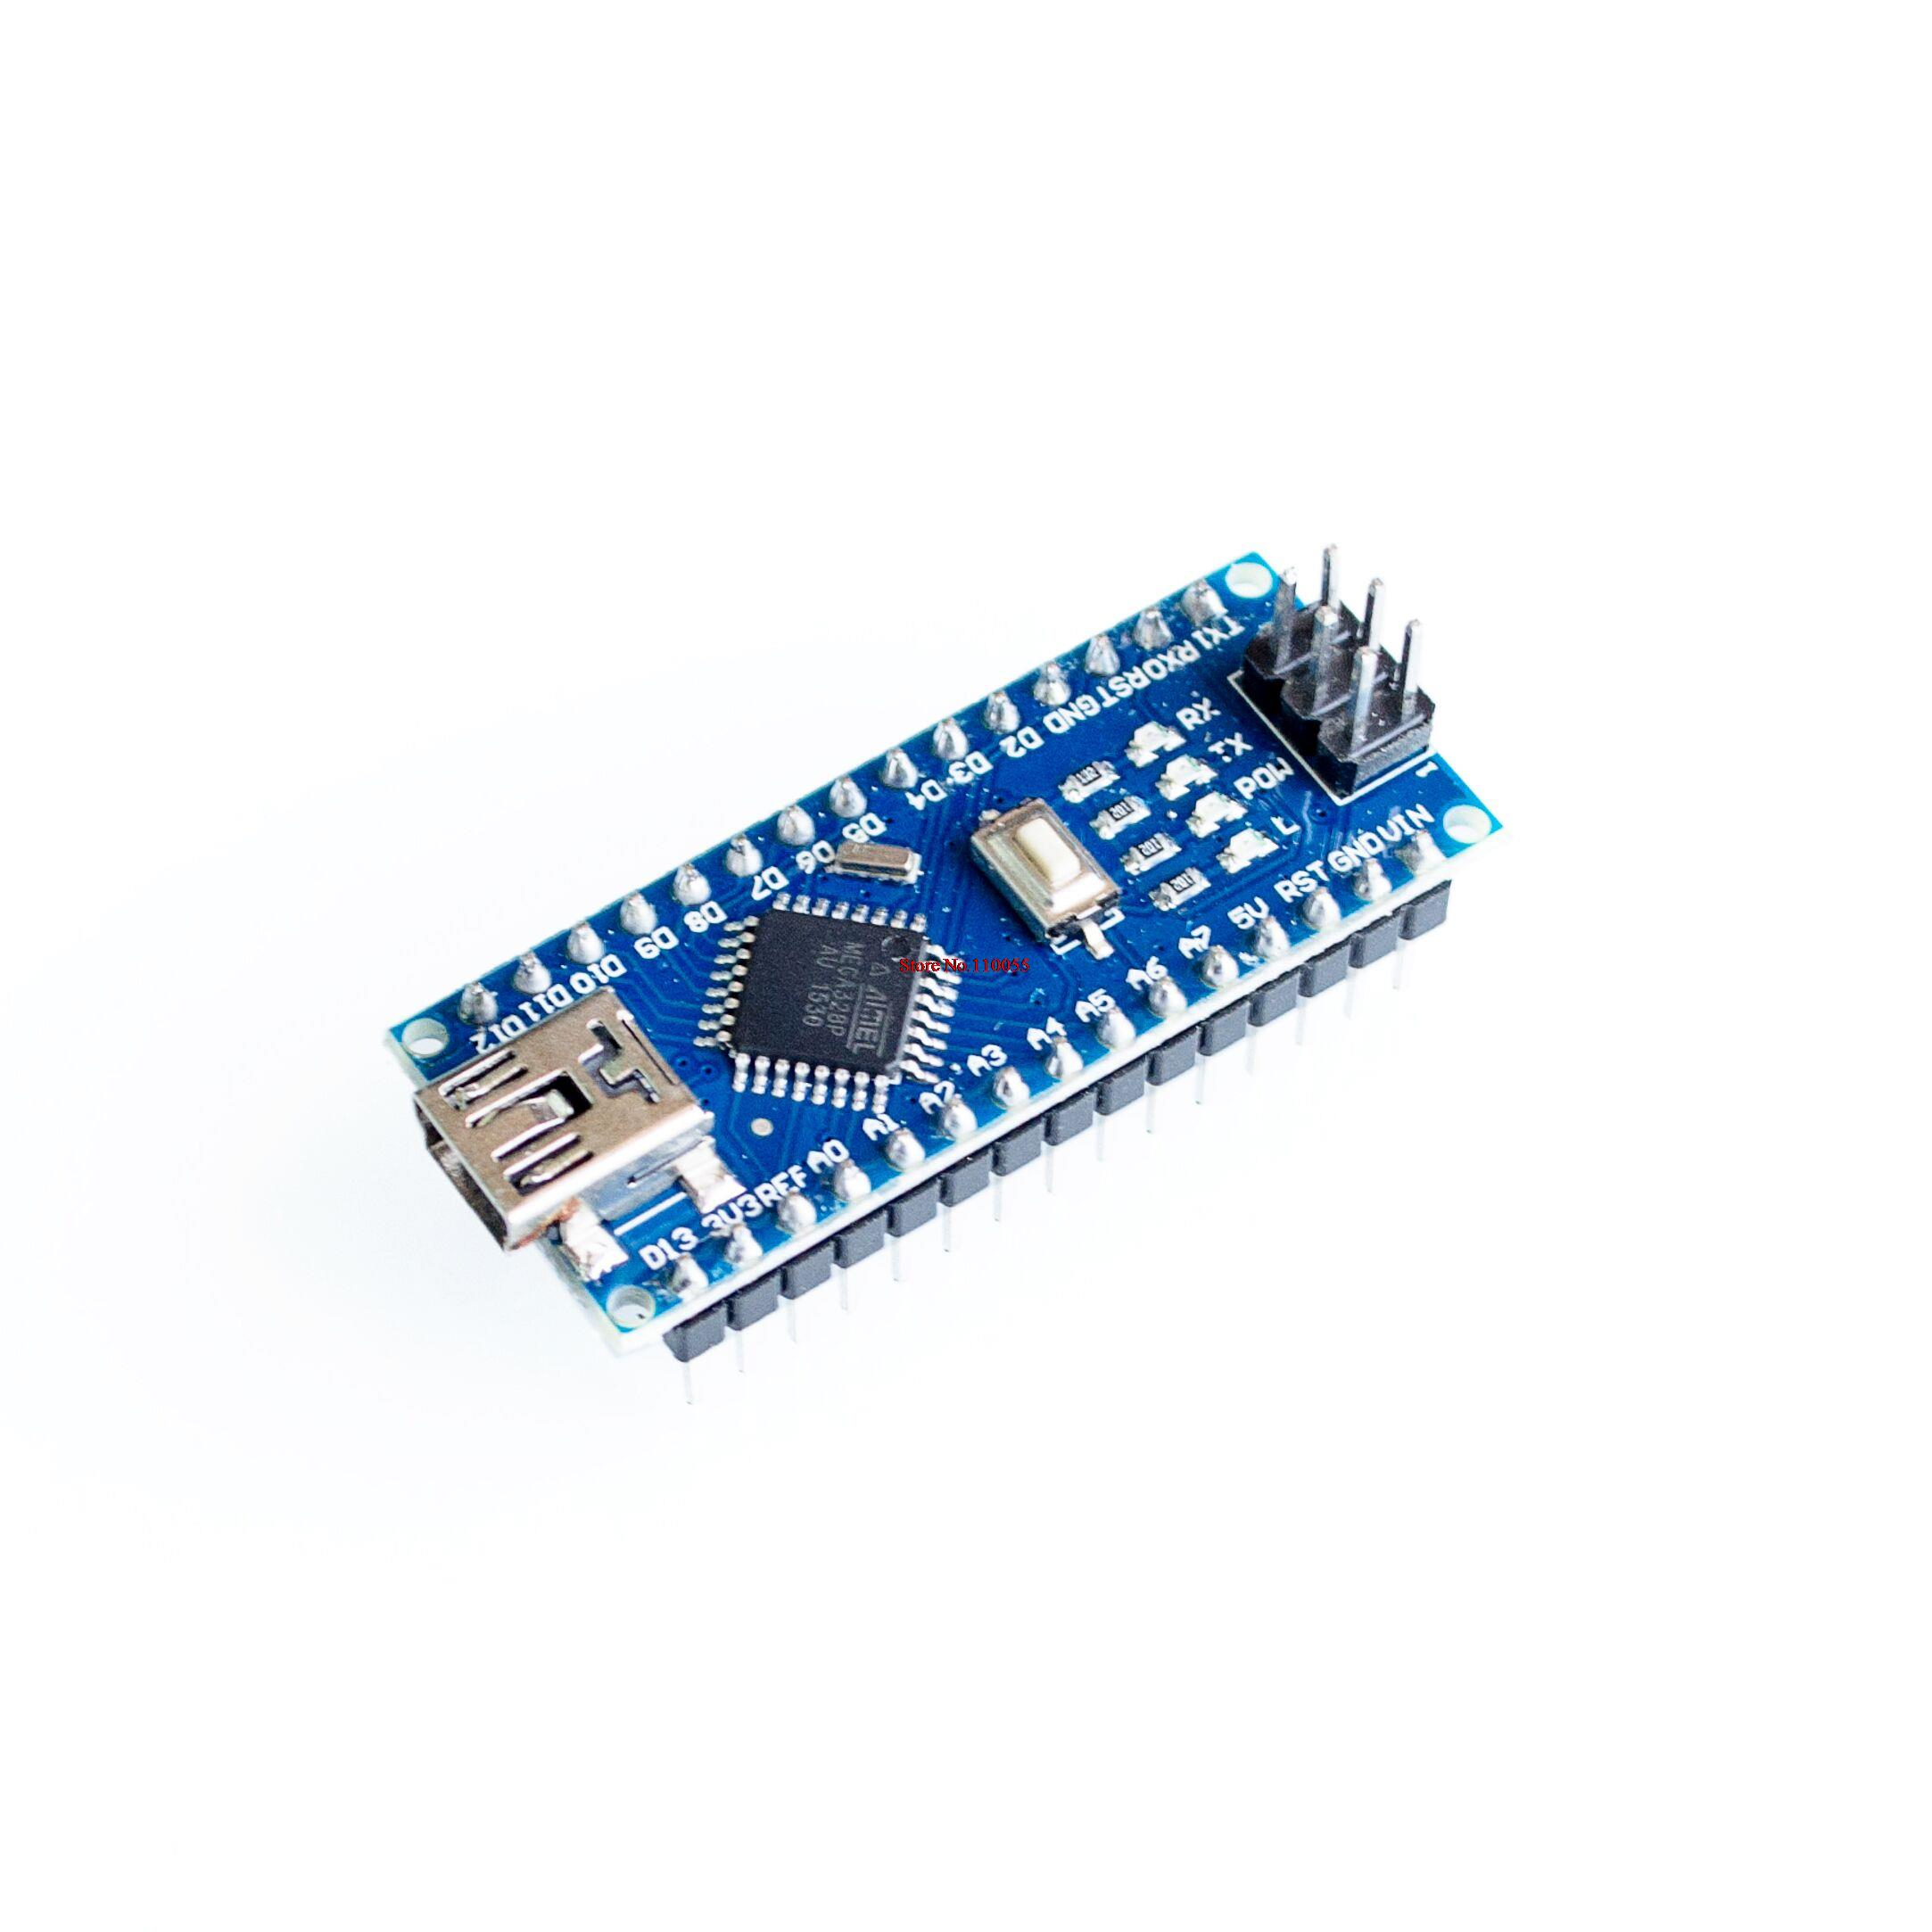 Full RC Arduino Control - Page 10 - RC Groups